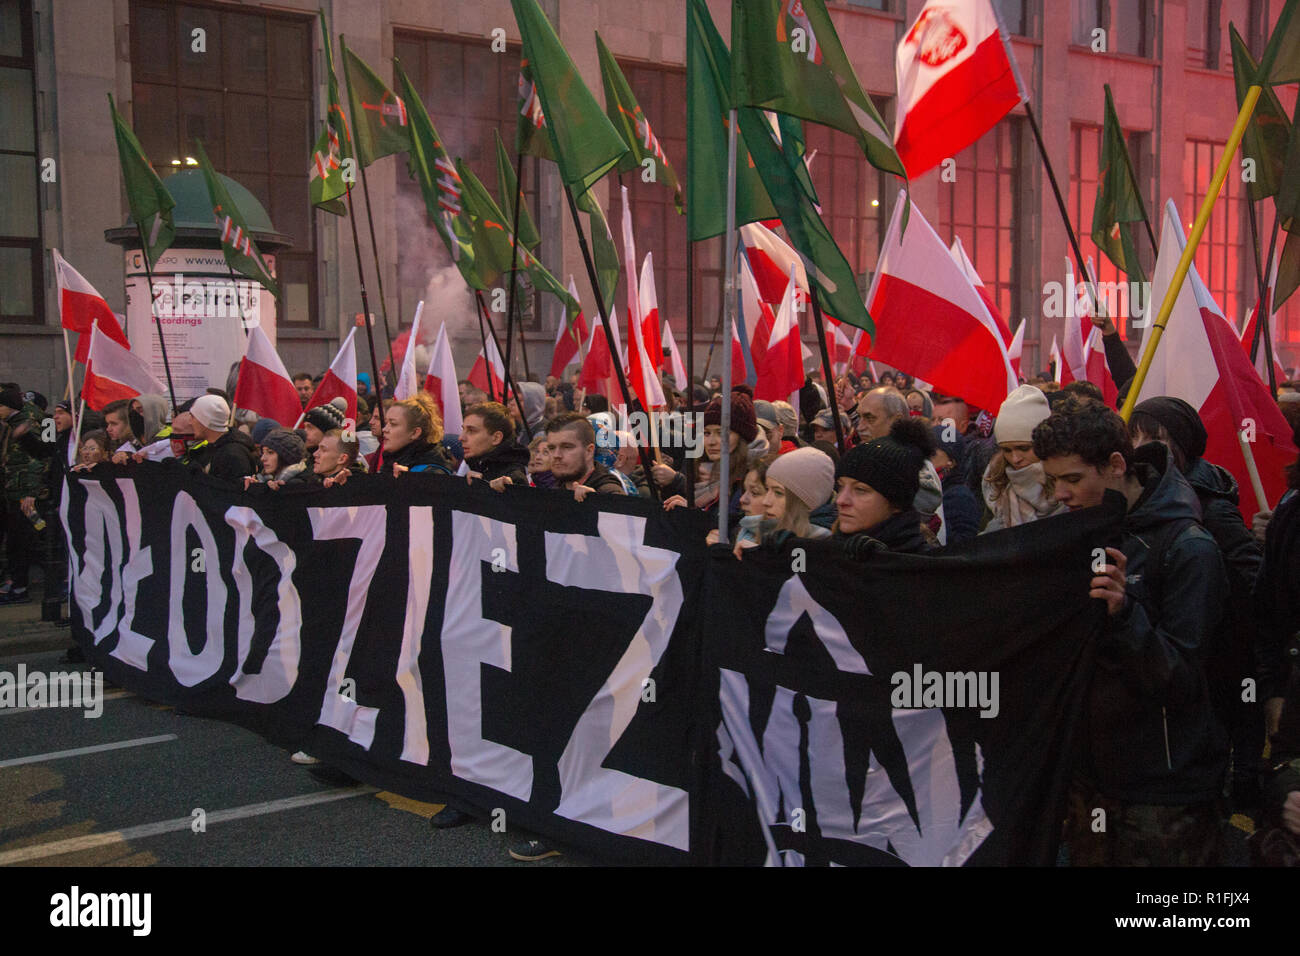 Warsaw, Poland, 11 November 2018: Celebrations of Polish Independence Day in a mass march that gathered more than 200 thousand people. All-Polish Youth (Młodzież Wszechpolska) - Stock Image